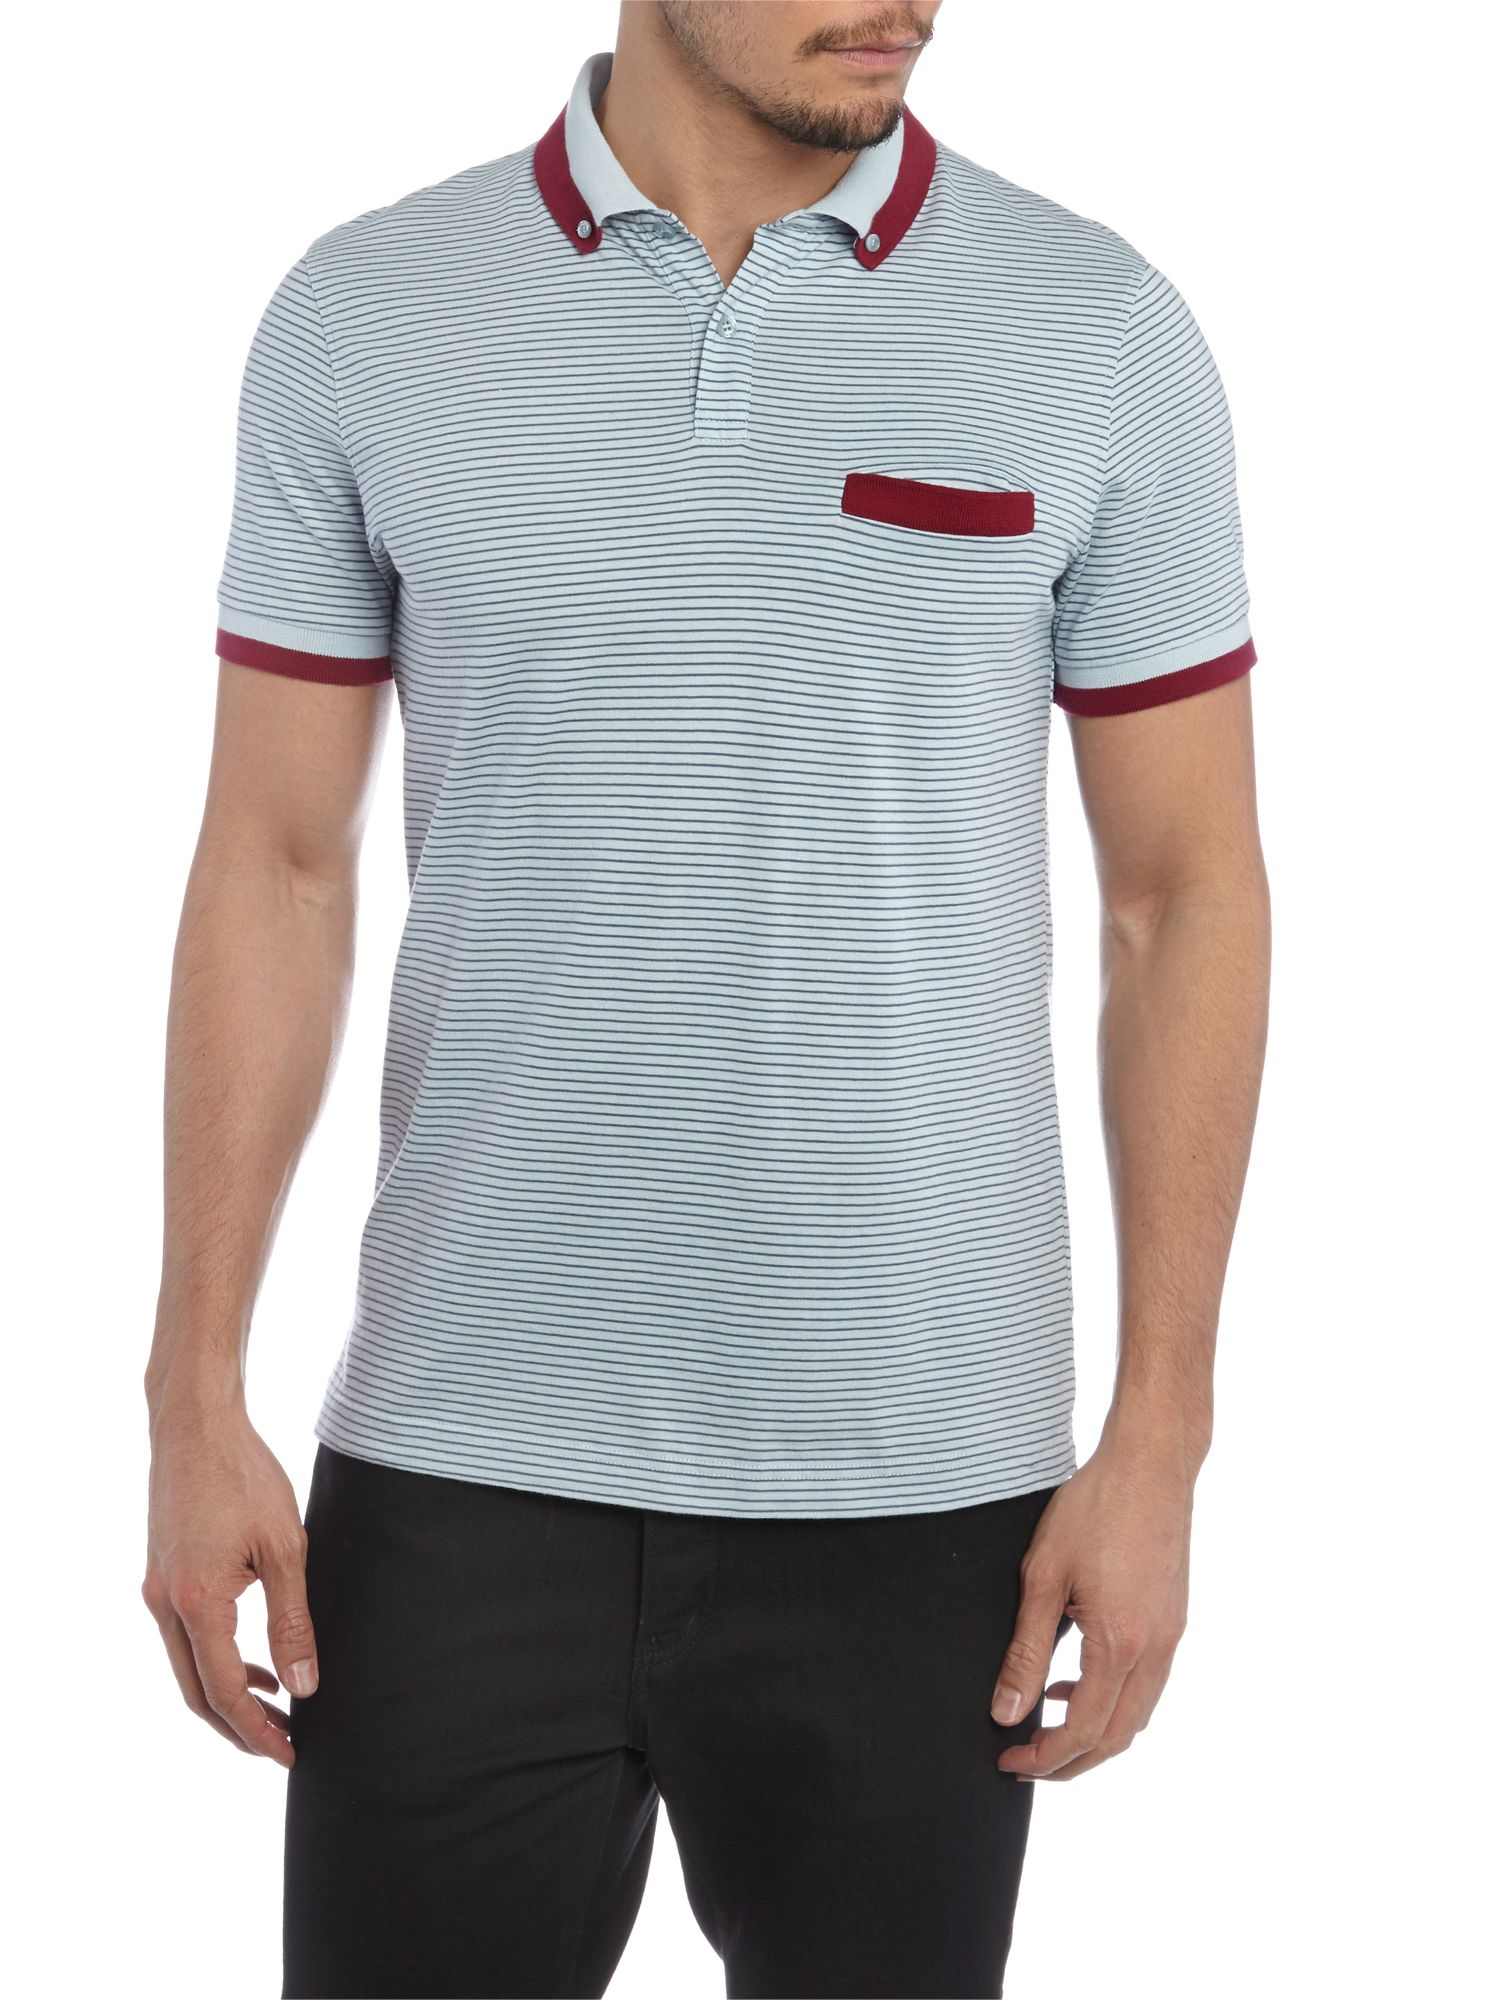 Slim fit yarn dye stripe polo